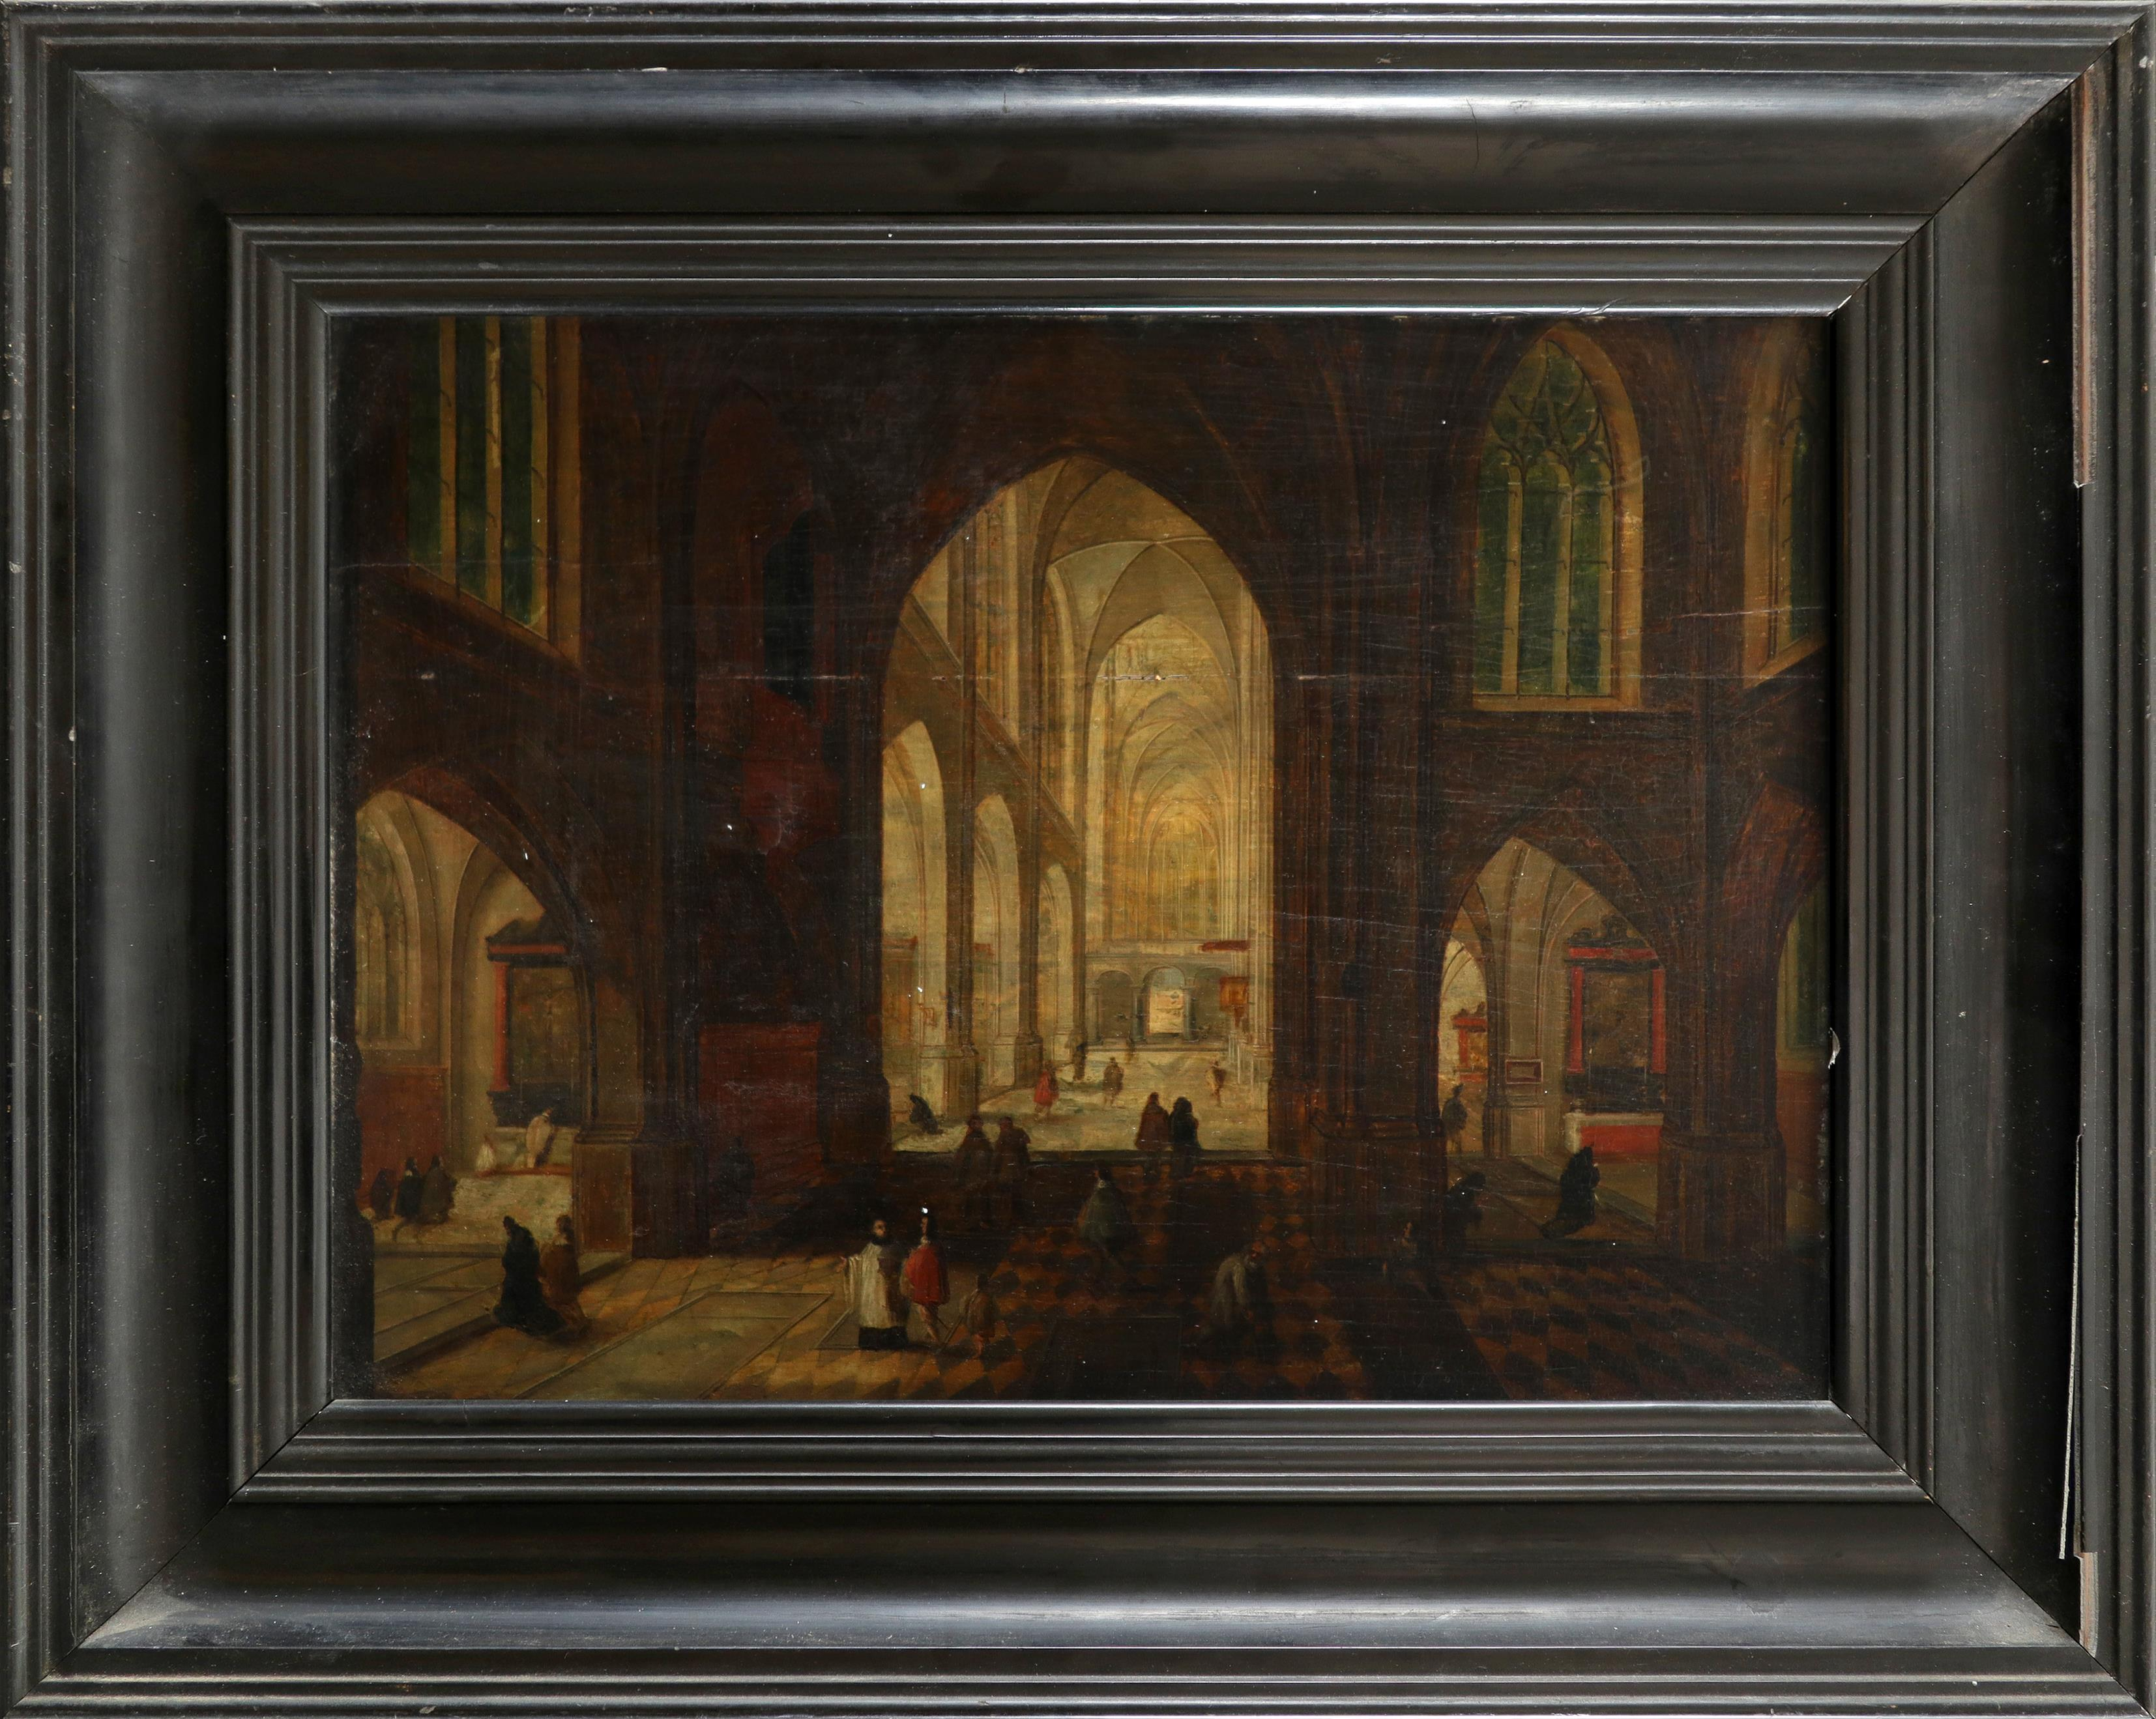 Circle of Pieter Neefs the Elder Interior of a cathedral at night Oil on panel 26.8 x 37cm; 10½ x - Image 2 of 3